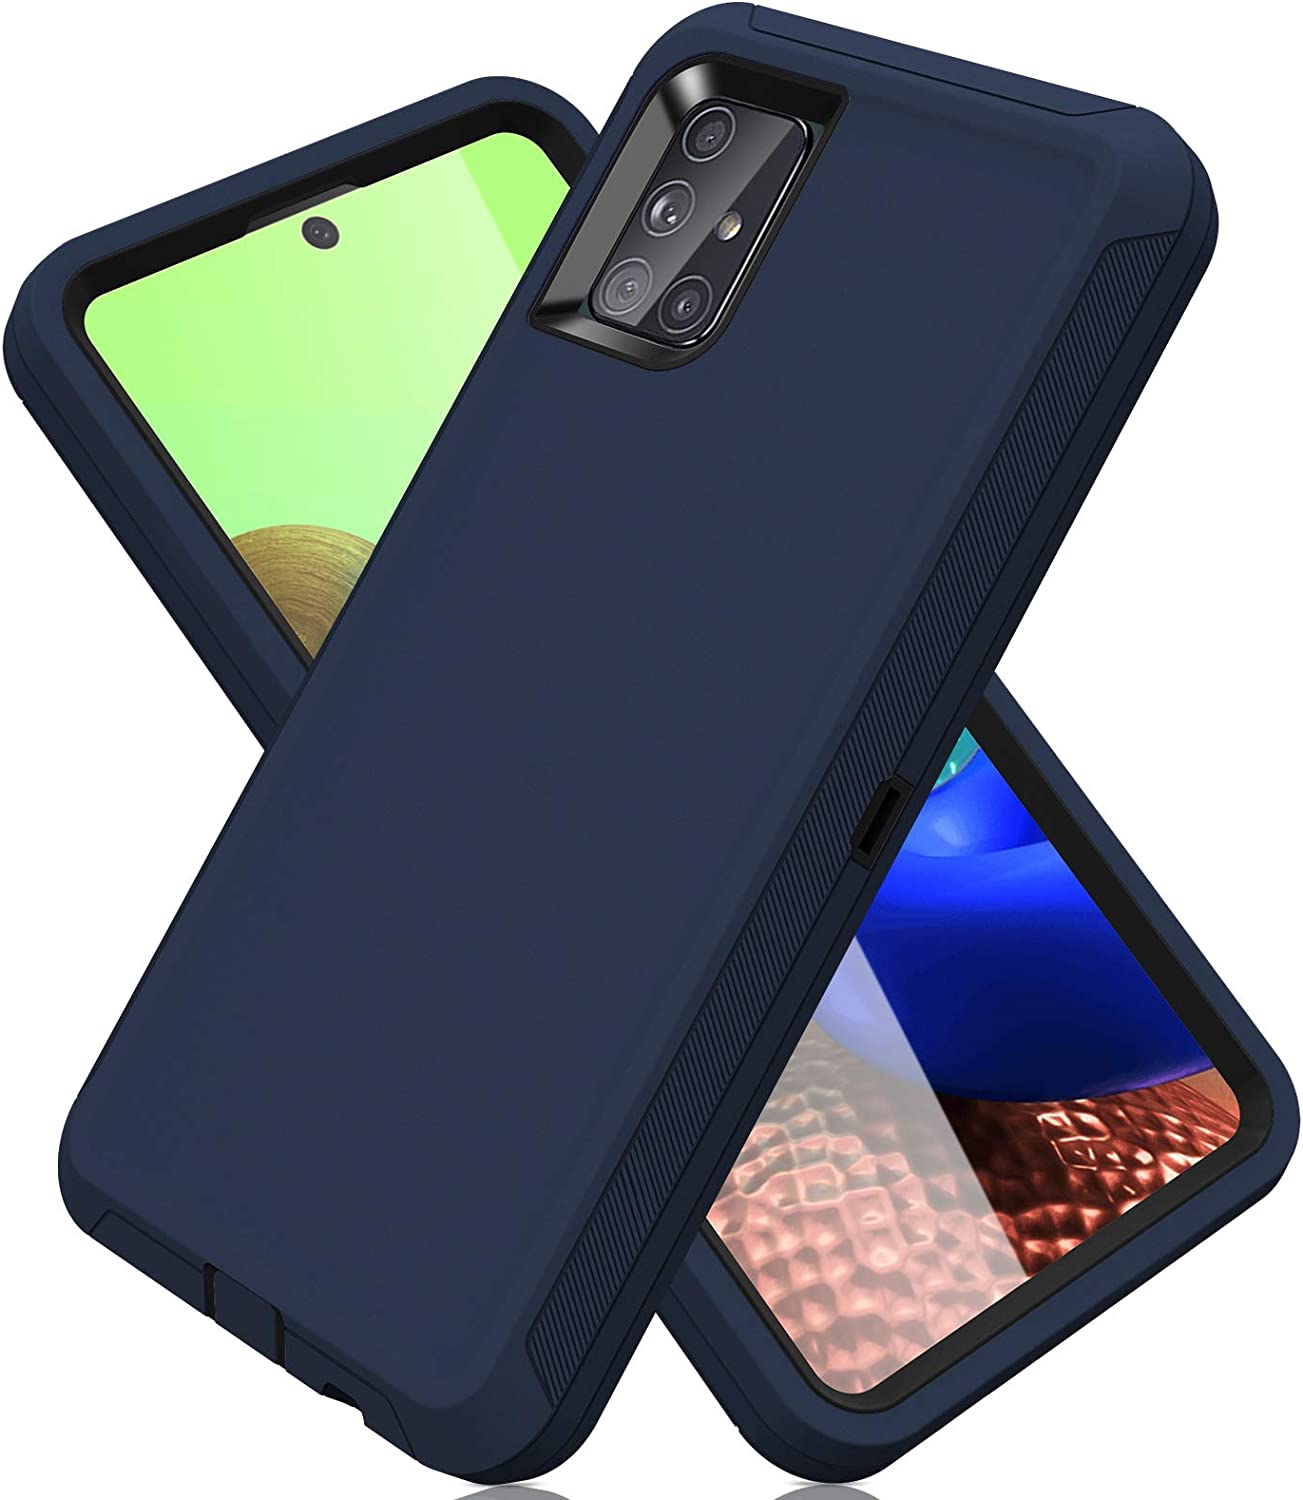 ACAGET for Samsung A71 5G Case, Galaxy A71 Case 5G Heavy Duty Protective Armor Shock-Absorbing Dual Layer Rubber TPU + PC Cover Non-Slip Bumper Phone Cases for Samsung Galaxy A71 5G Dark Blue/Black